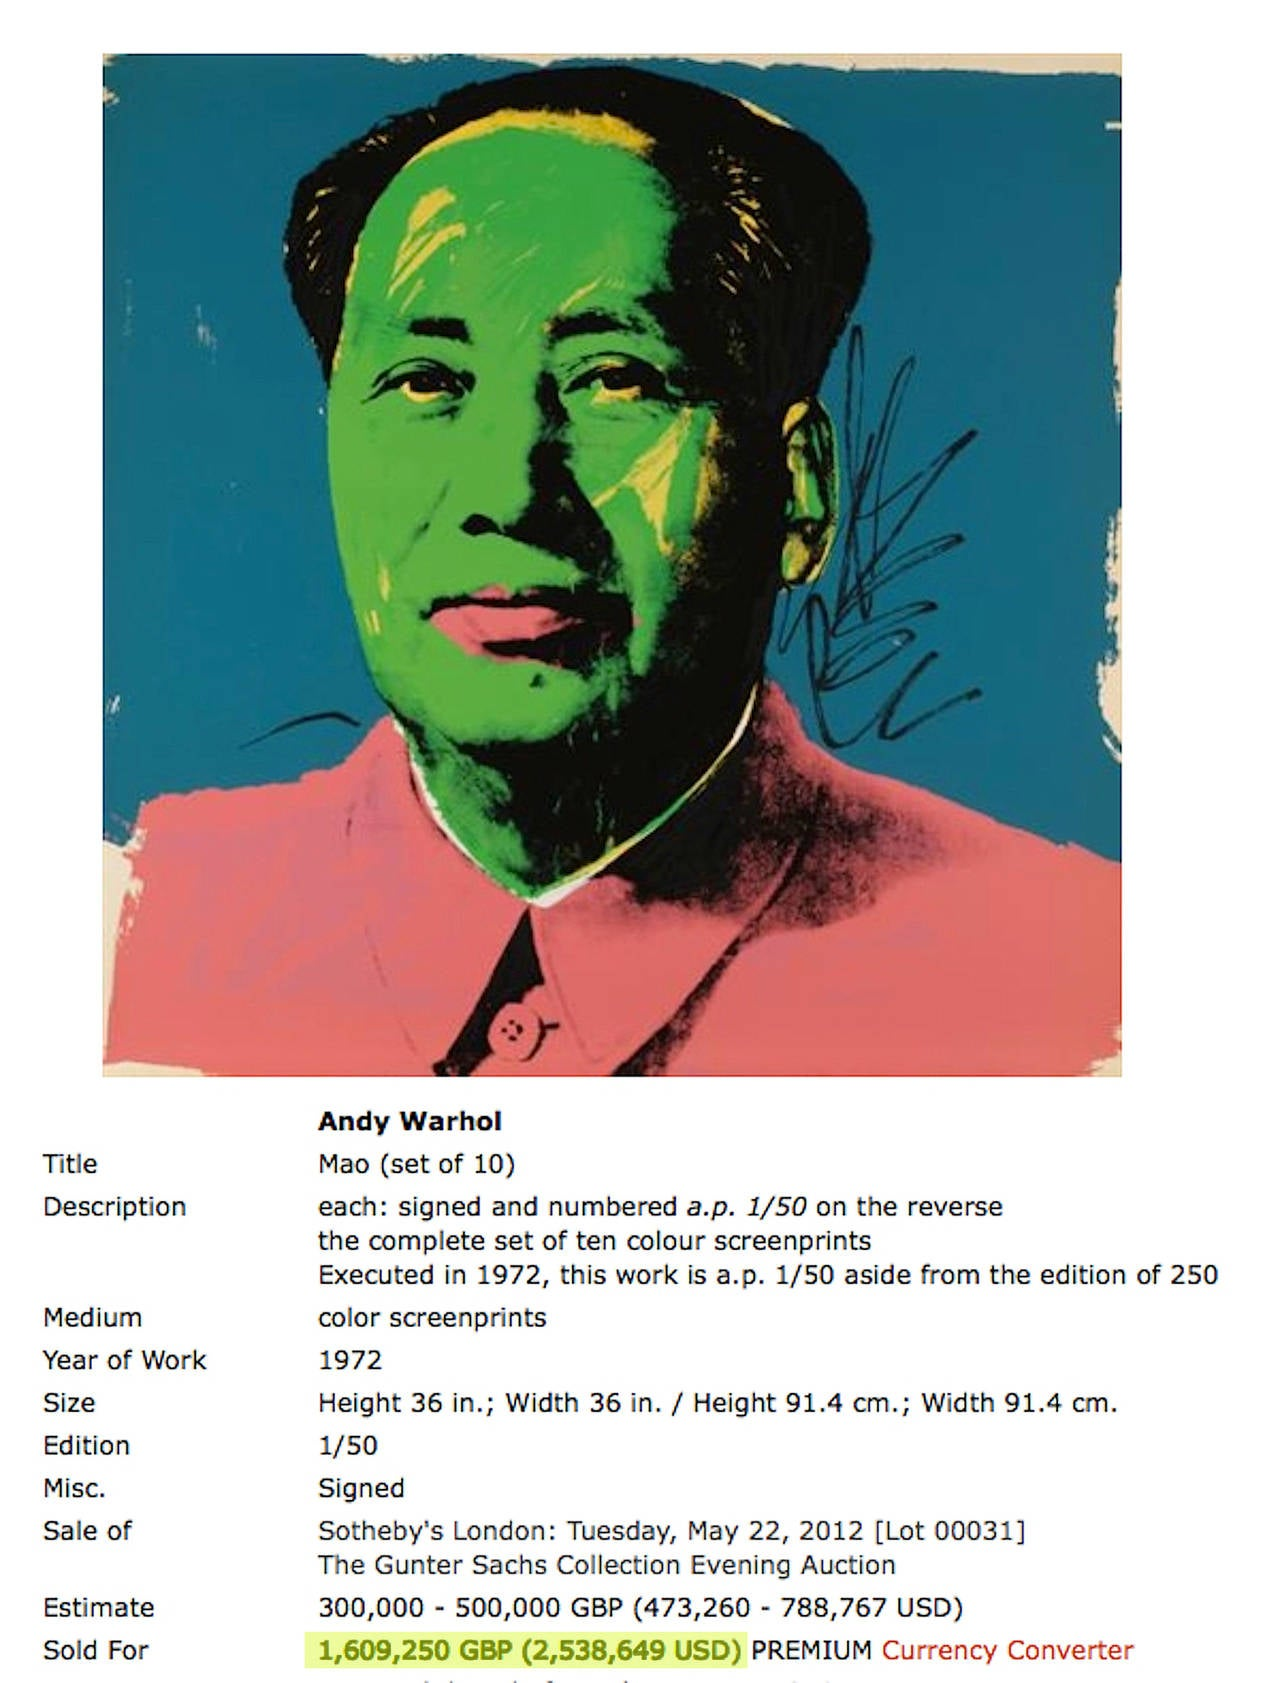 Mao, suite of 10 - Pop Art Print by Andy Warhol